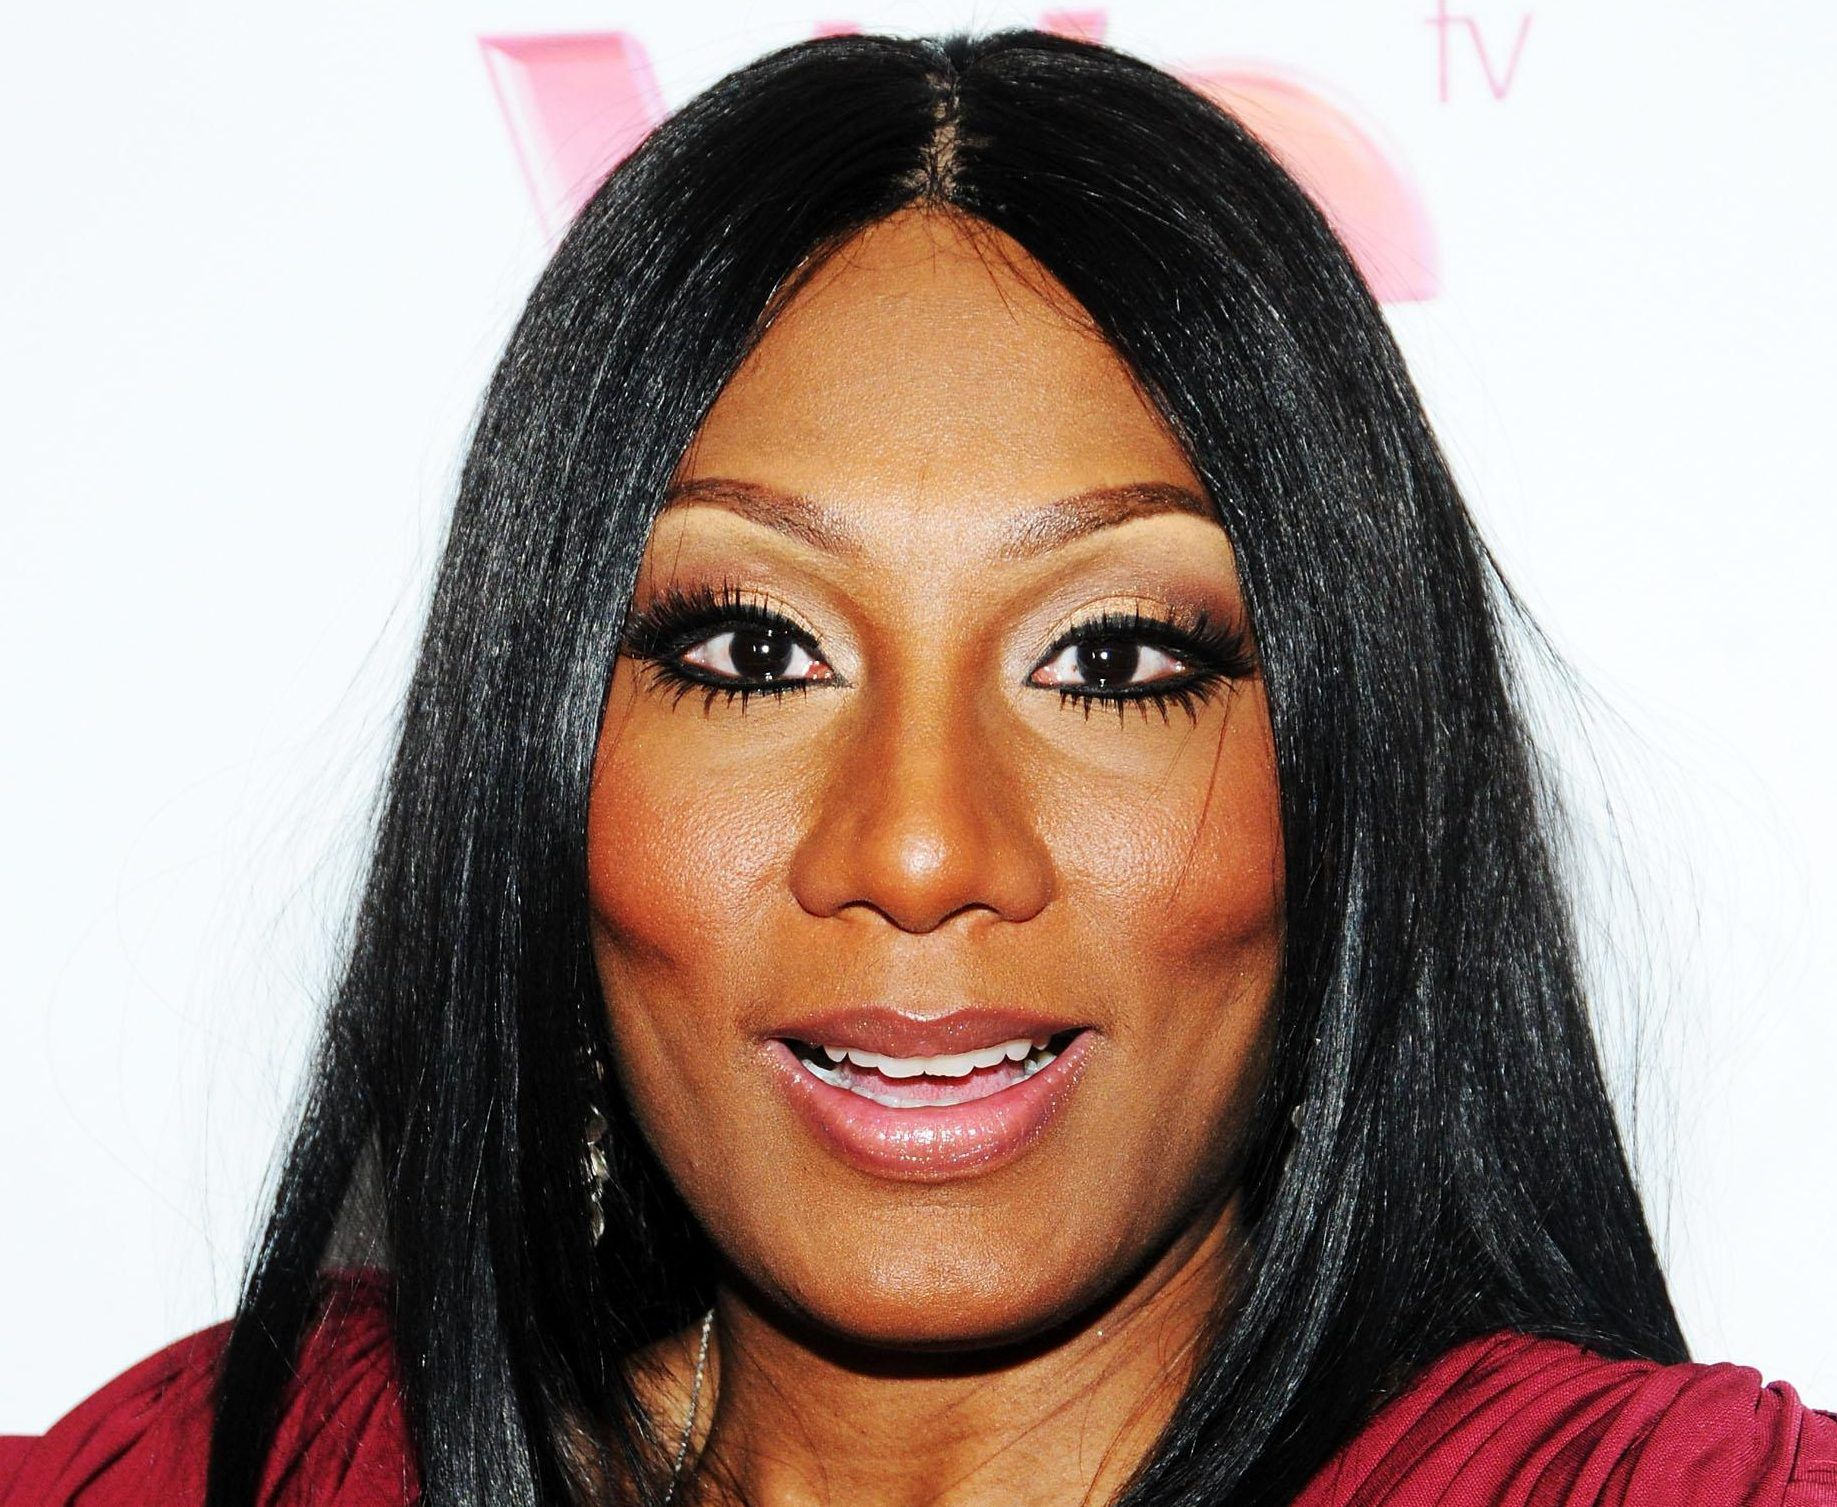 Towanda Braxton Praises Her Friend Sean K - See Her Emotional Message